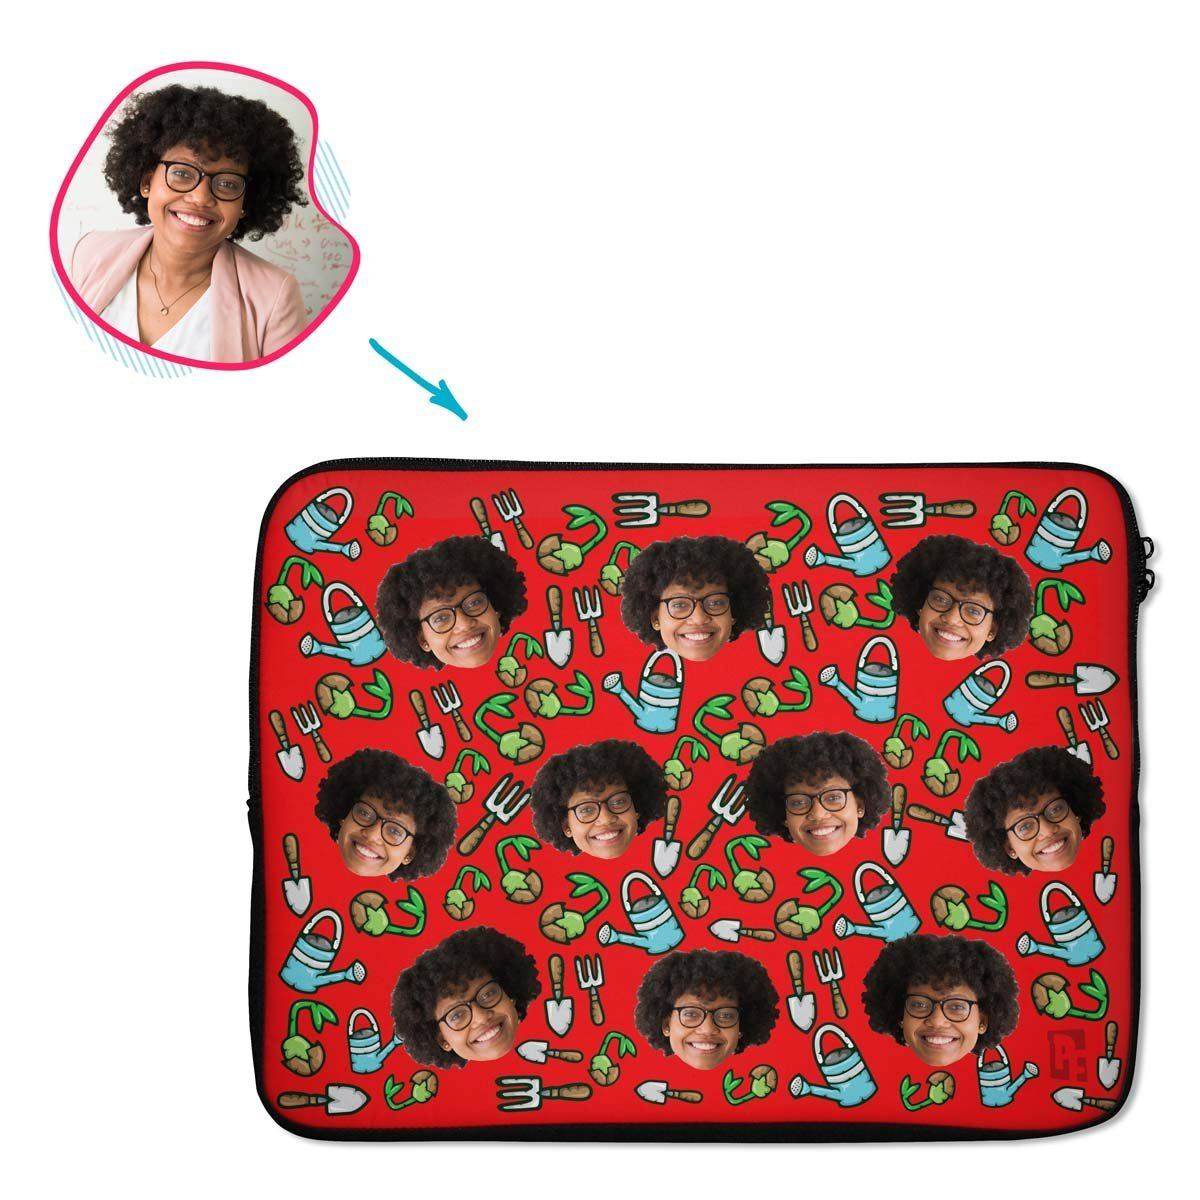 red Gardening laptop sleeve personalized with photo of face printed on them